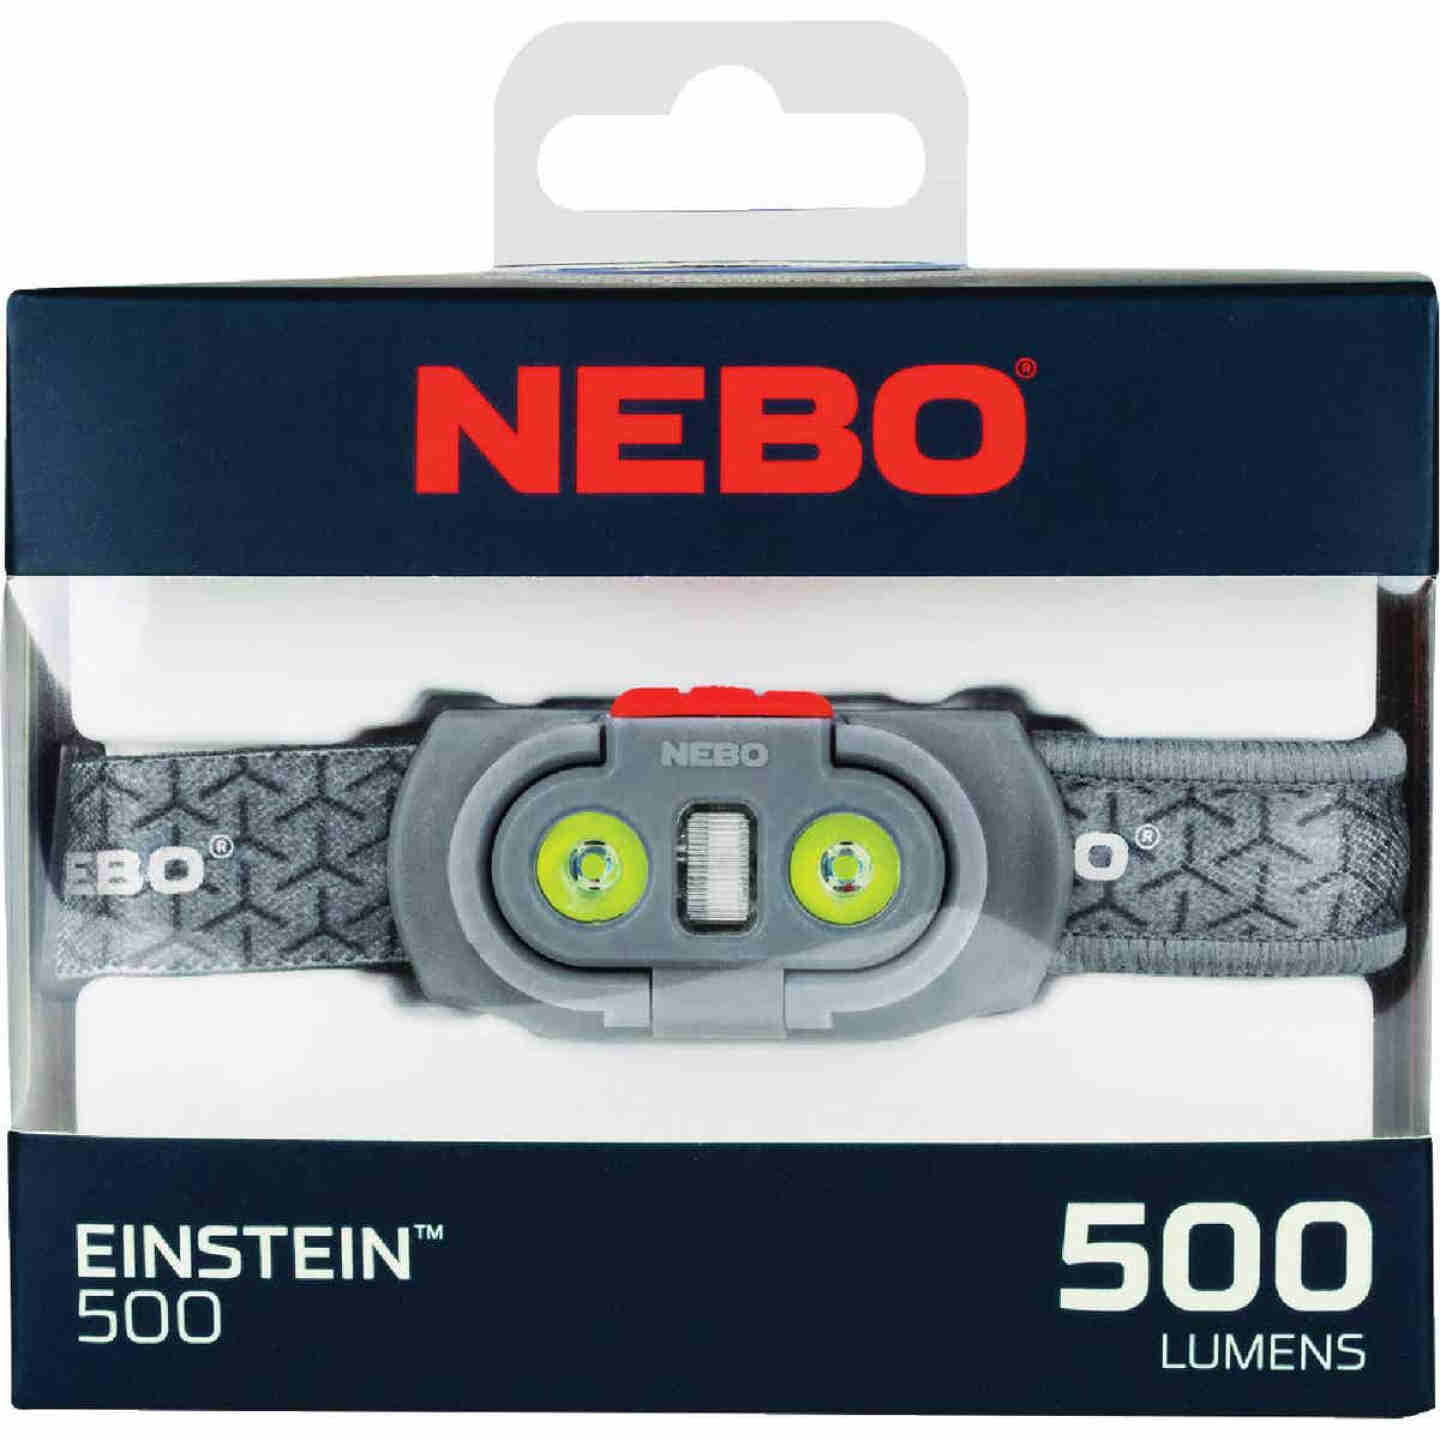 Nebo Einstein 500 Lm. LED 3AAA Headlamp Image 2